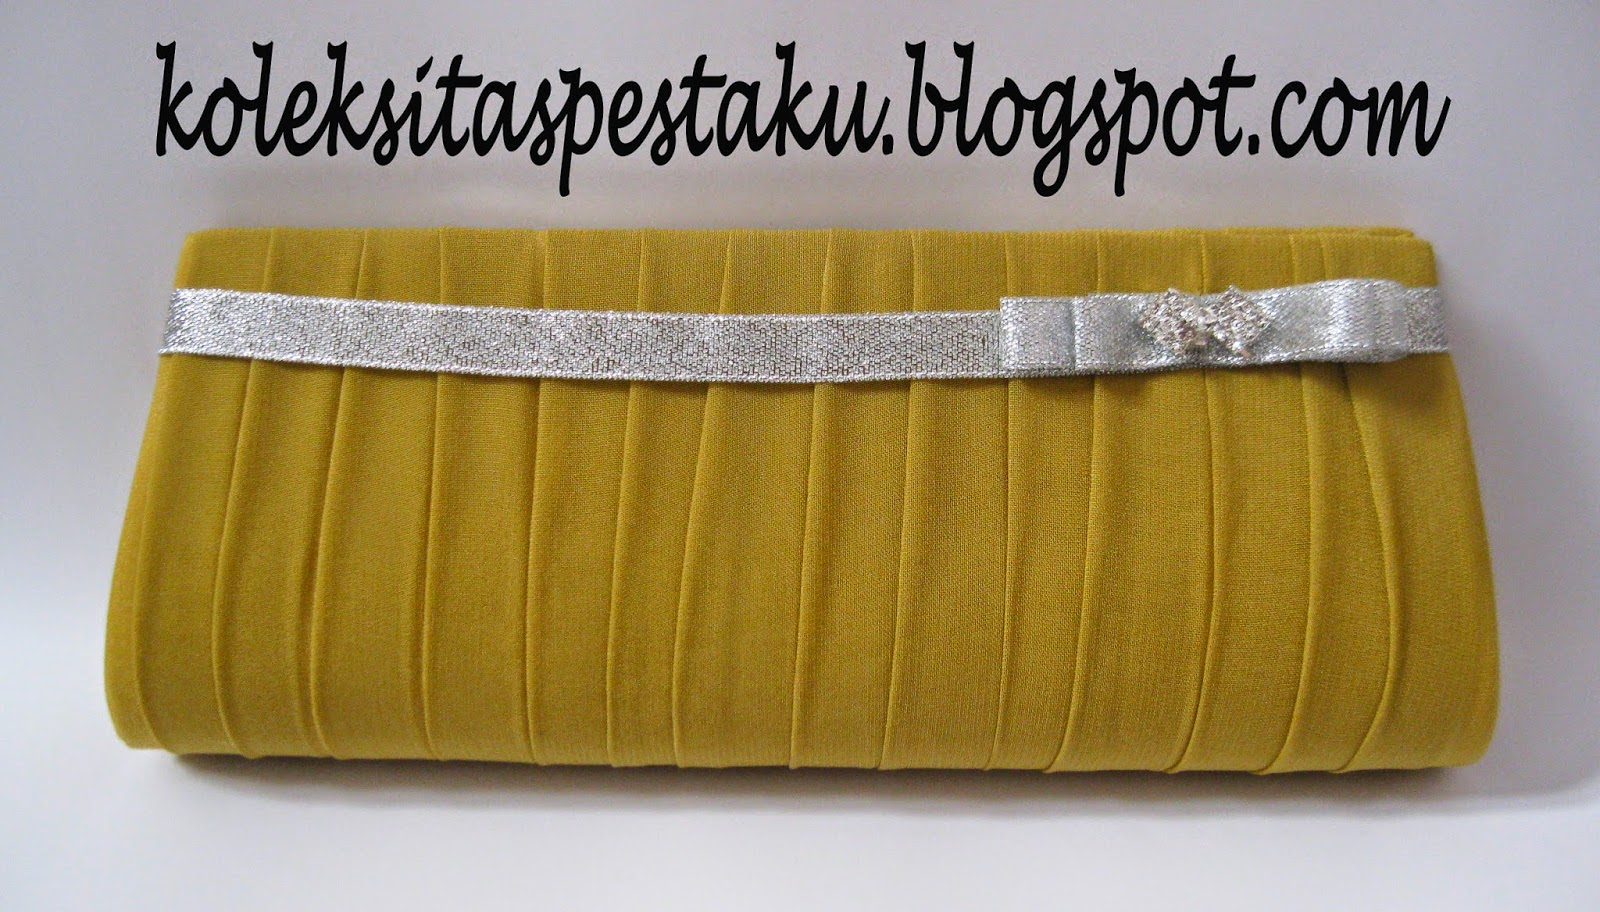 Clutch Bag Sifon Plisket Gold Unik